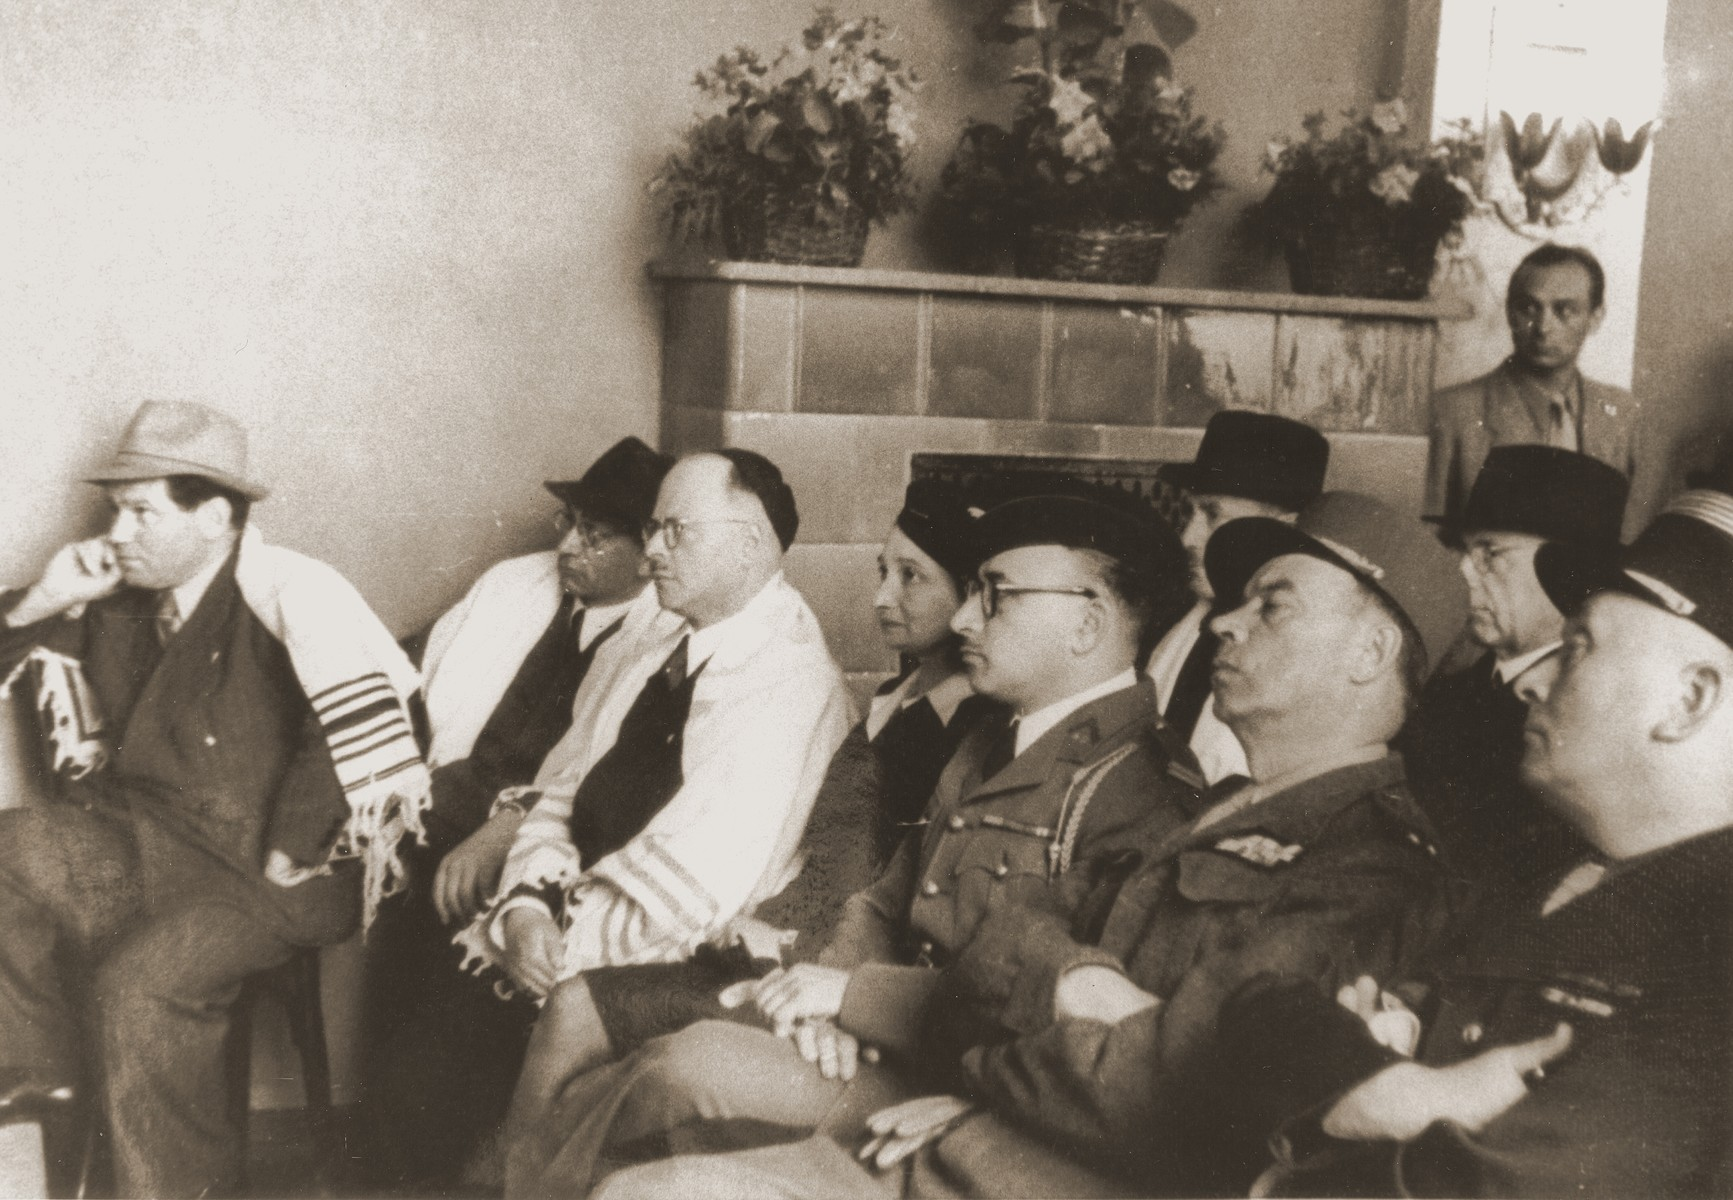 Jewish, German and French officials attend the dedication of the first Berlin synagogue to be re-opened after the war.  The synagogue was located on the fourth floor of the former Jewish home for the aged on the Iranischestrasse in the French sector.  Pictured from left to right are Julius Meyer, unknown, Erich Nelhaus, Lt. Weill, General Lancon and an aide.